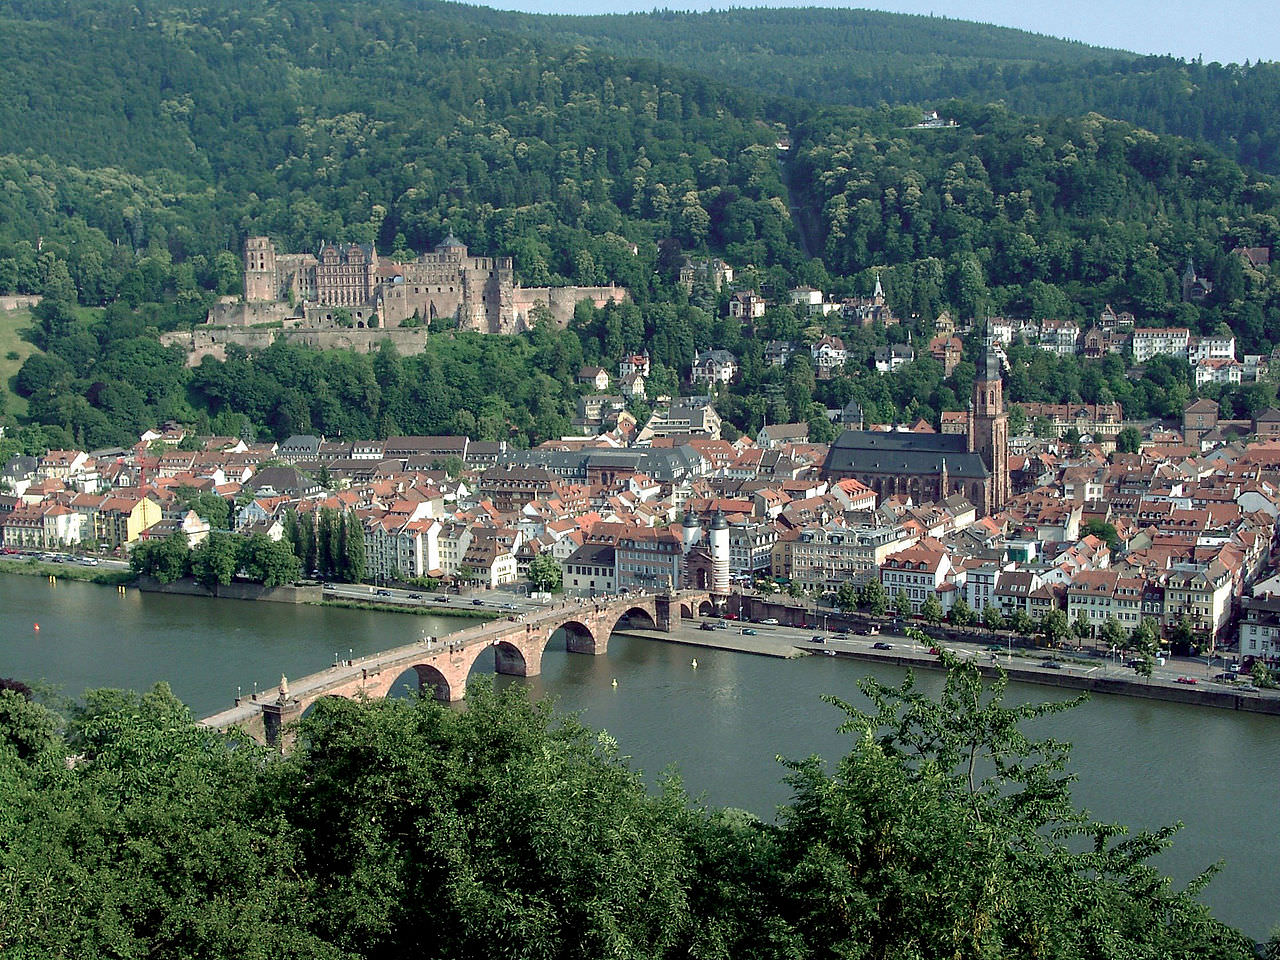 Heidelberg - photo from Wikipedia